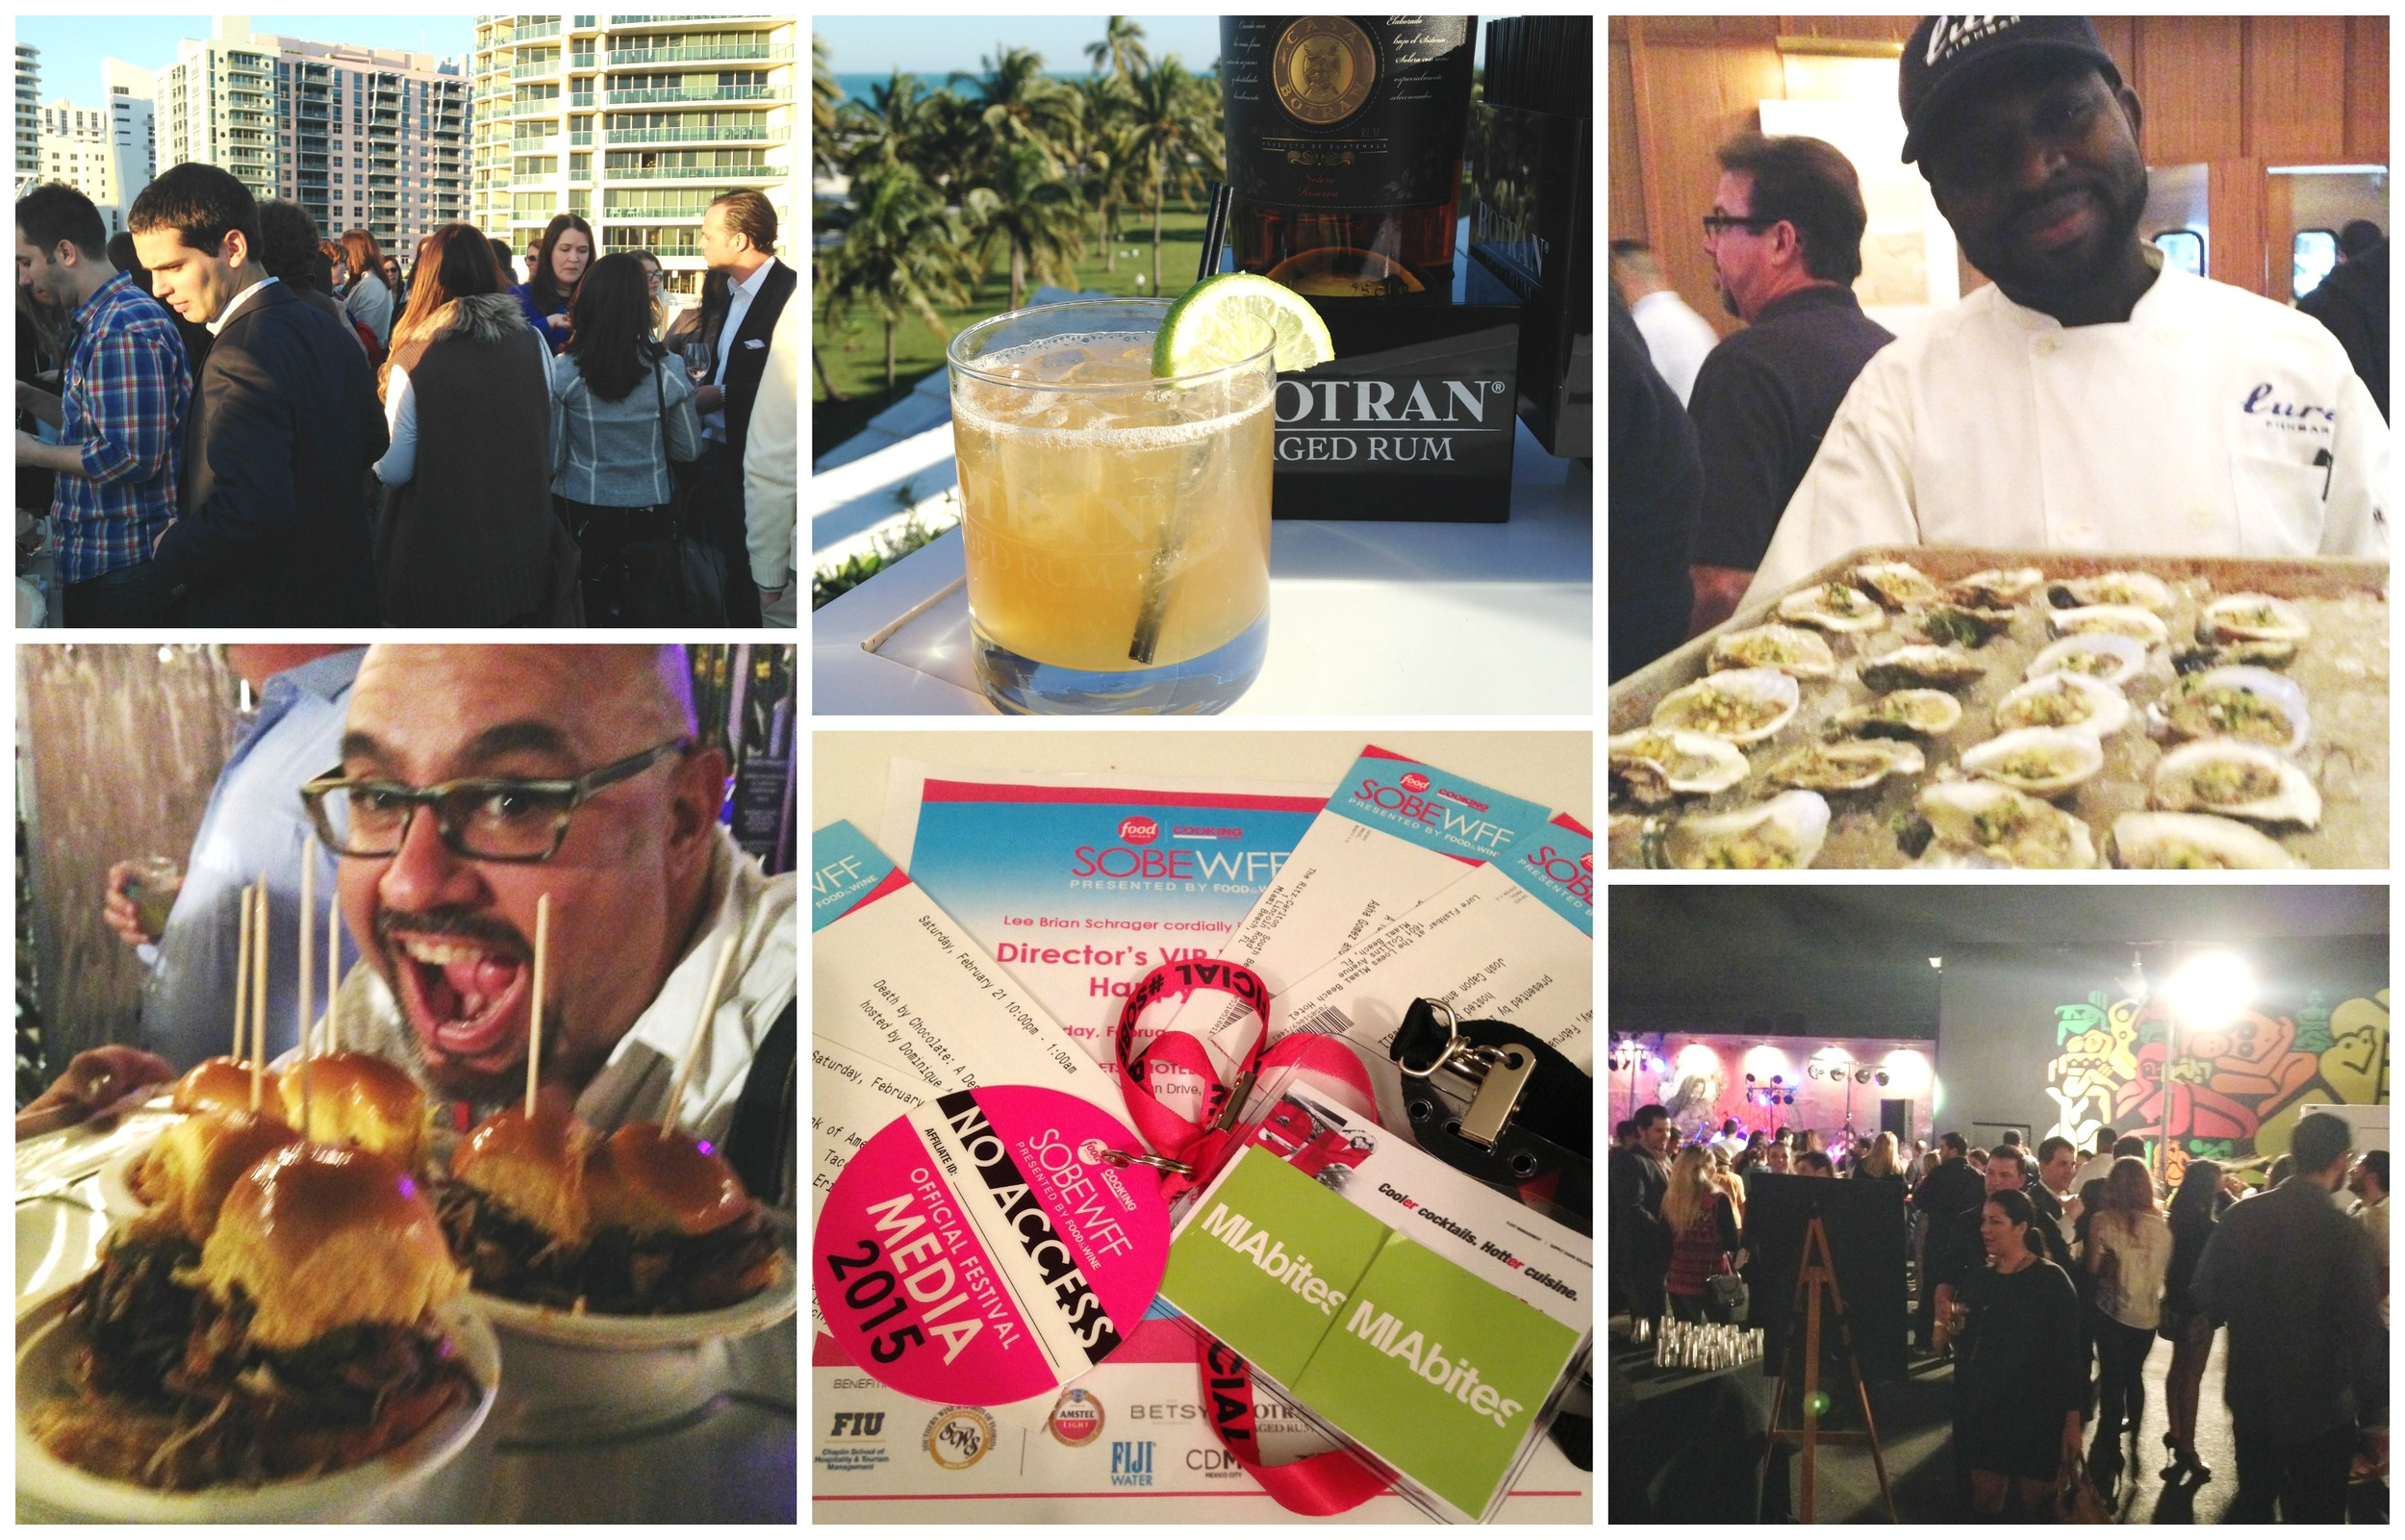 Just a sampling of some of the fun events during SOBEWFF 2015!